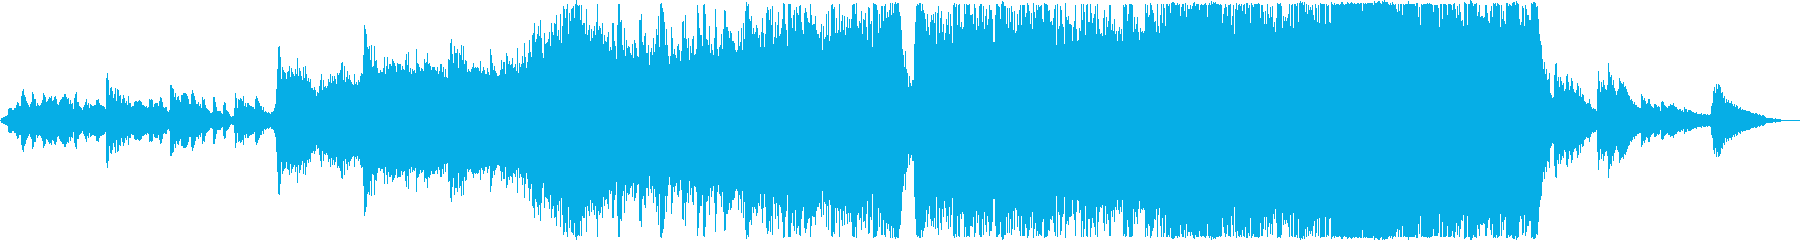 Epic Cinematic's reproduced waveform